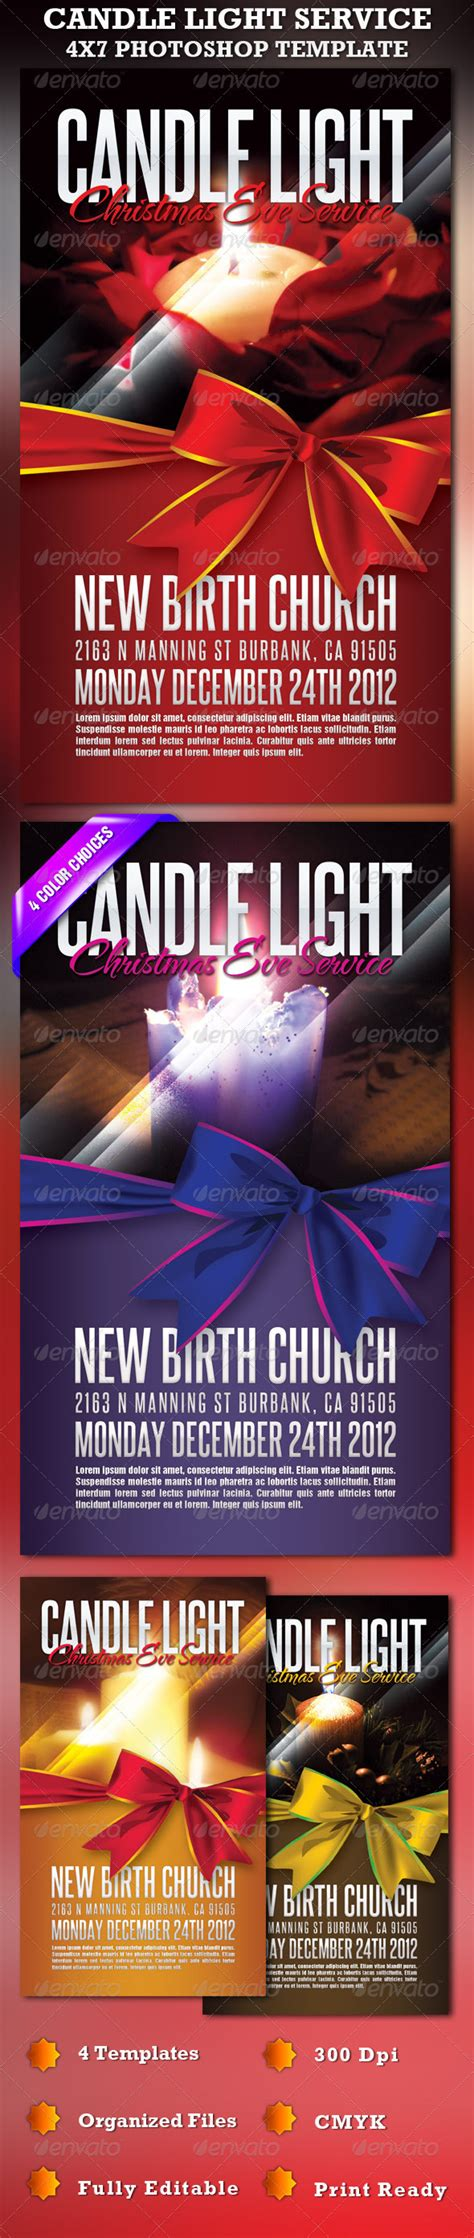 Candle Light Service Church Flyer Template By Loswl Graphicriver Lights Flyer Template